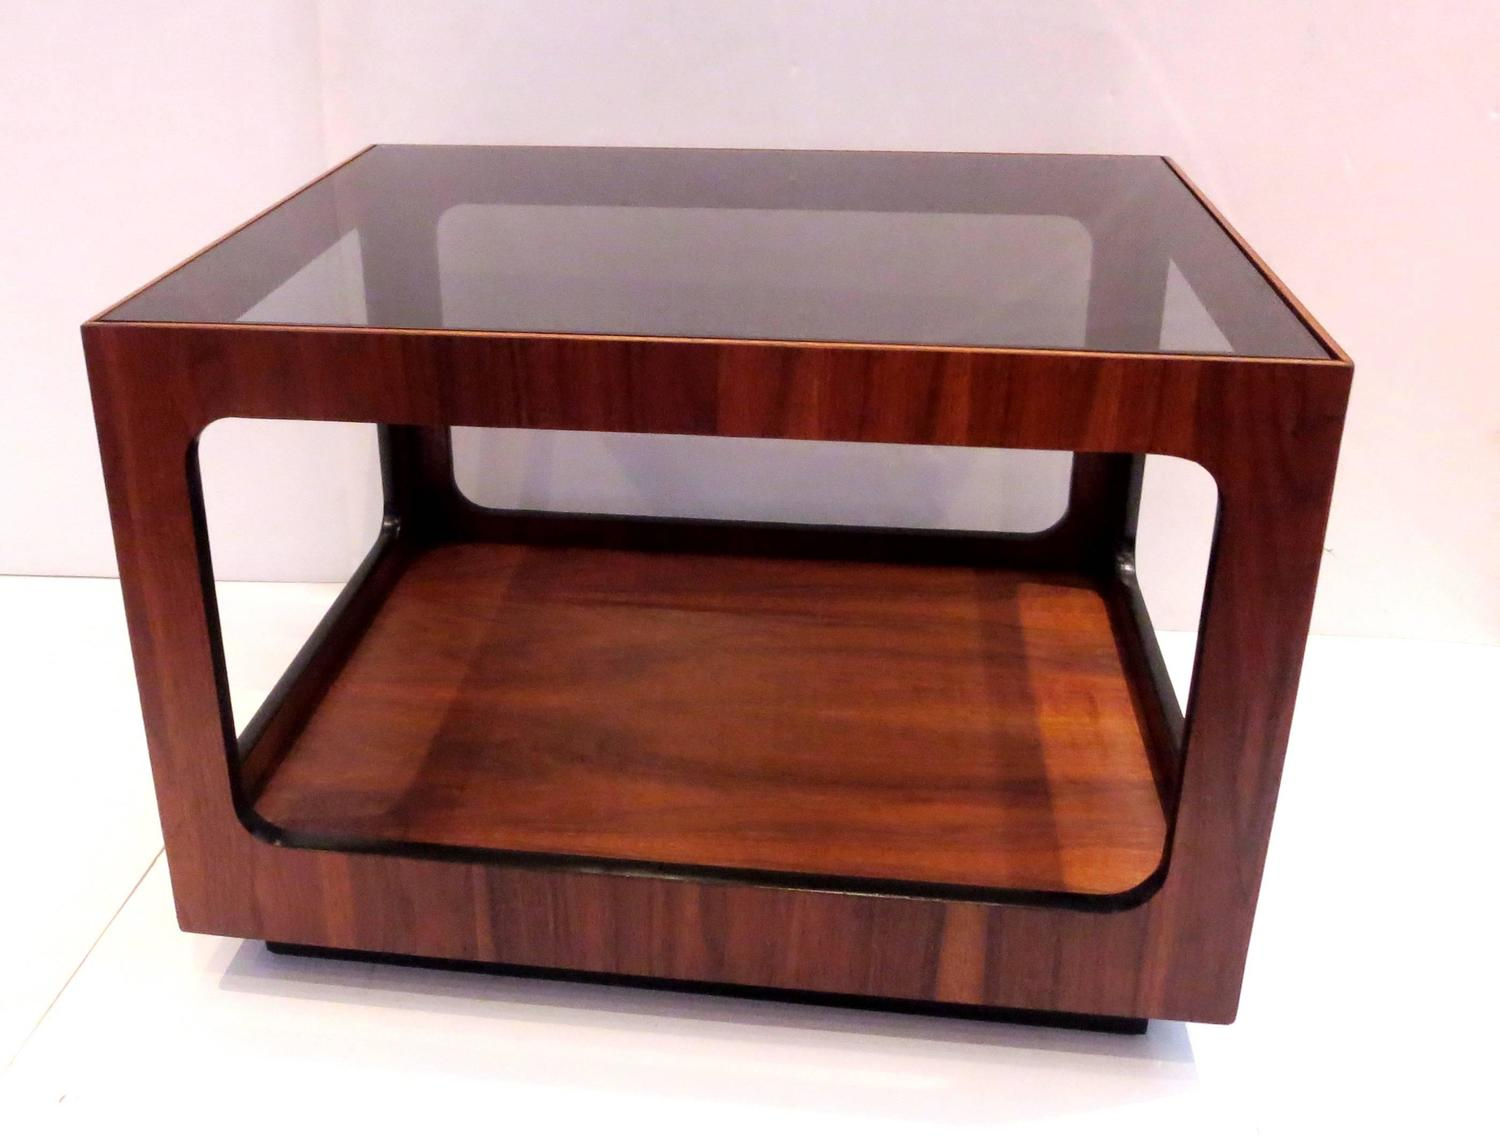 1970s California Modern Smoked Glass Walnut Cocktail Table